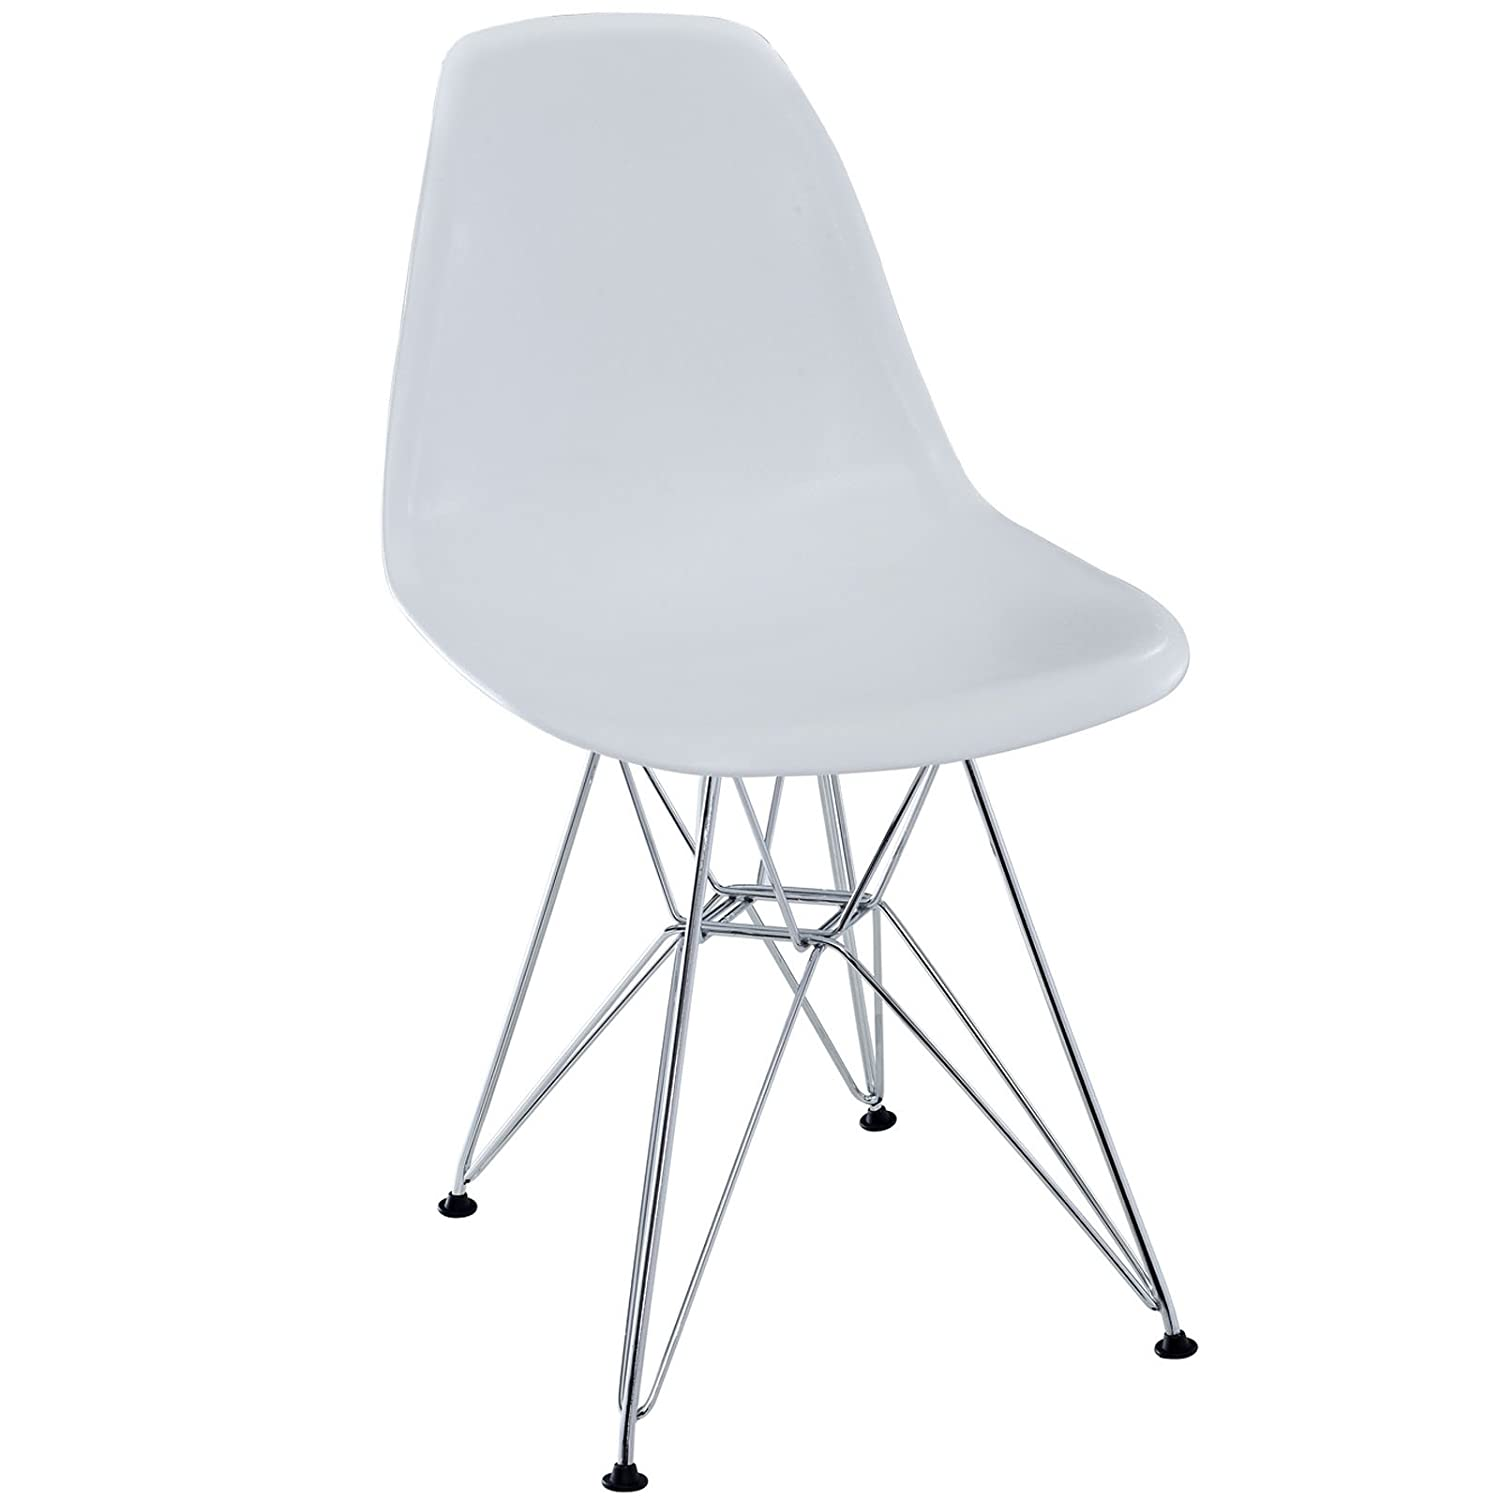 Attractive Amazon.com   Modway Paris Mid Century Modern Side Chair With Steel Metal  Base In White   Kitchen U0026 Dining Room Furniture